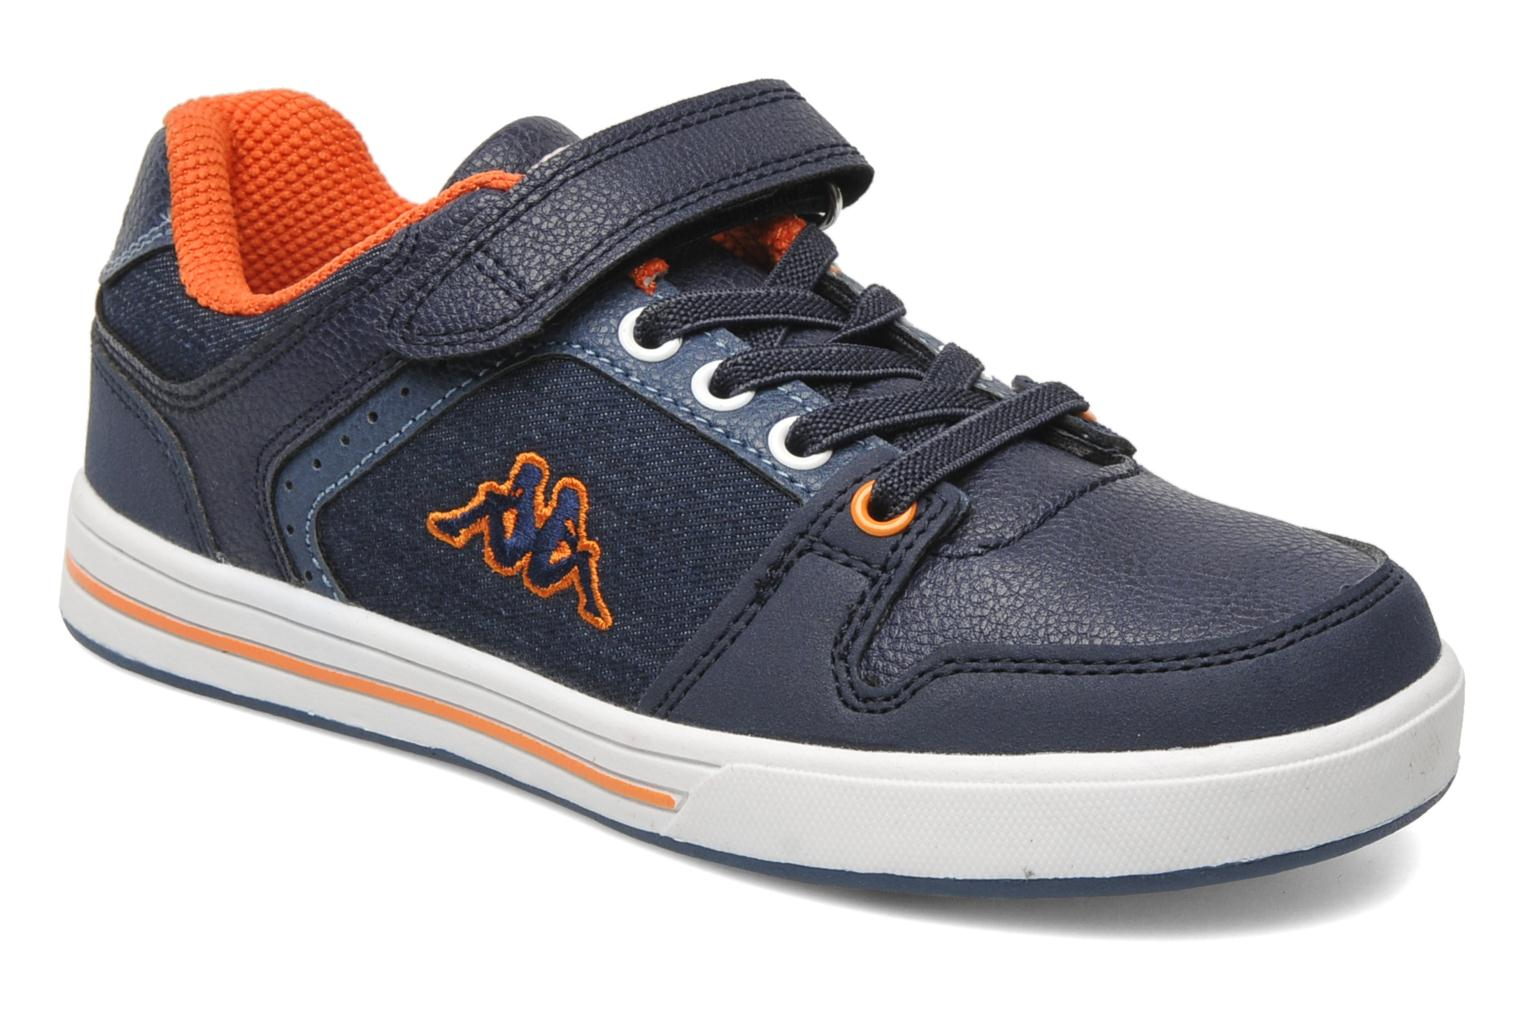 REGGIA NAVY/ORANGE/DARK DENIM